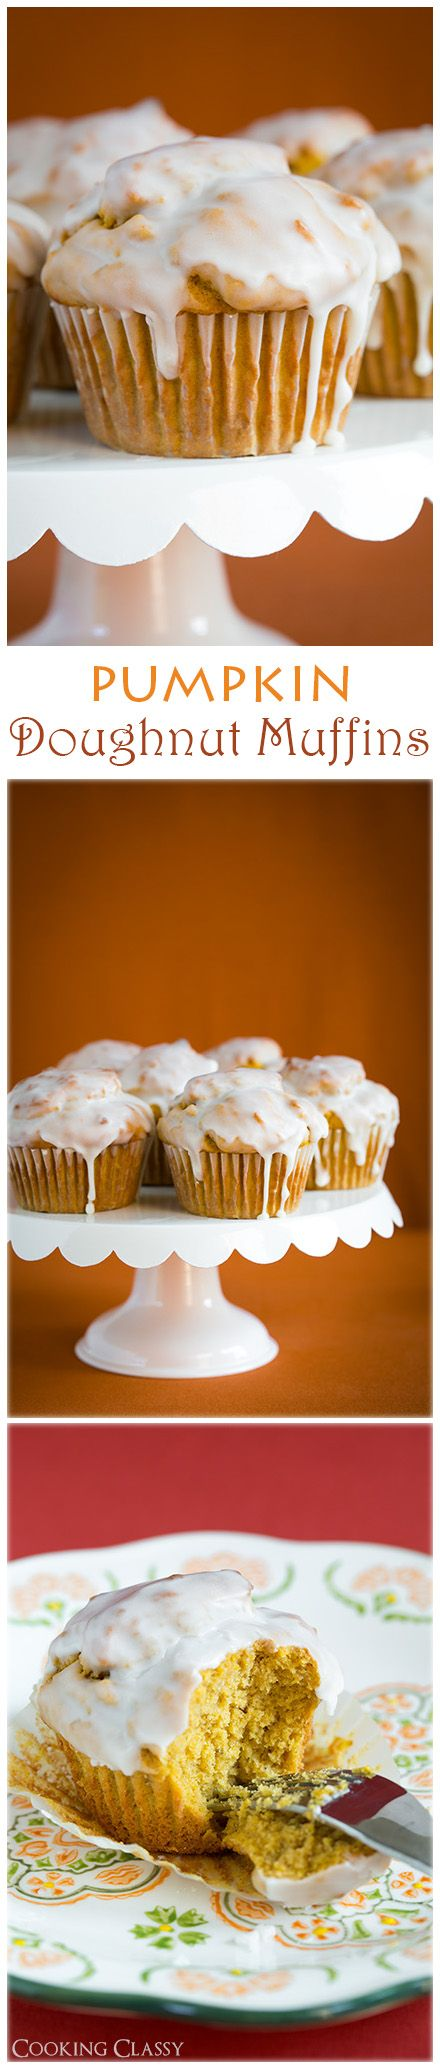 ... muffins pumpkin nut muffins pumpkin muffins pumpkin and feta muffins